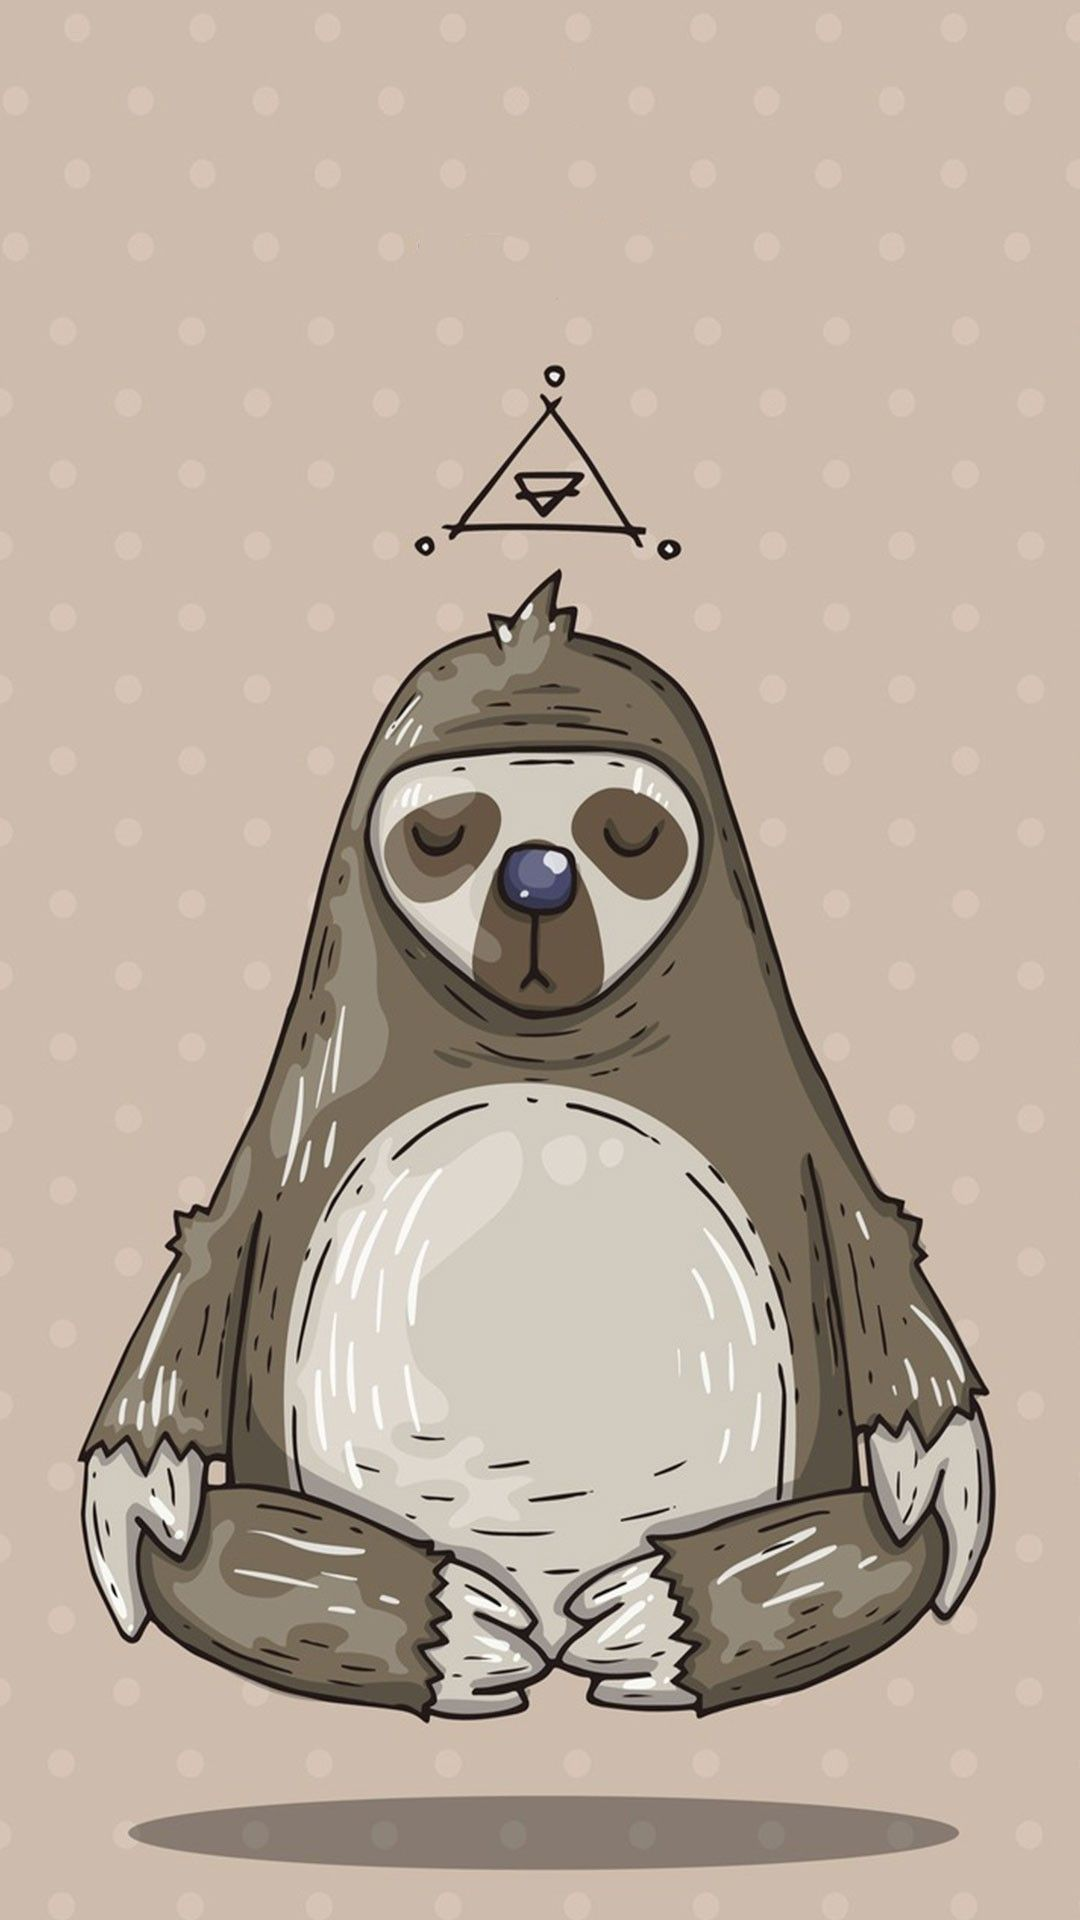 Pin di mariana sassaroli su wallpapers #10 sloth cute sloth e